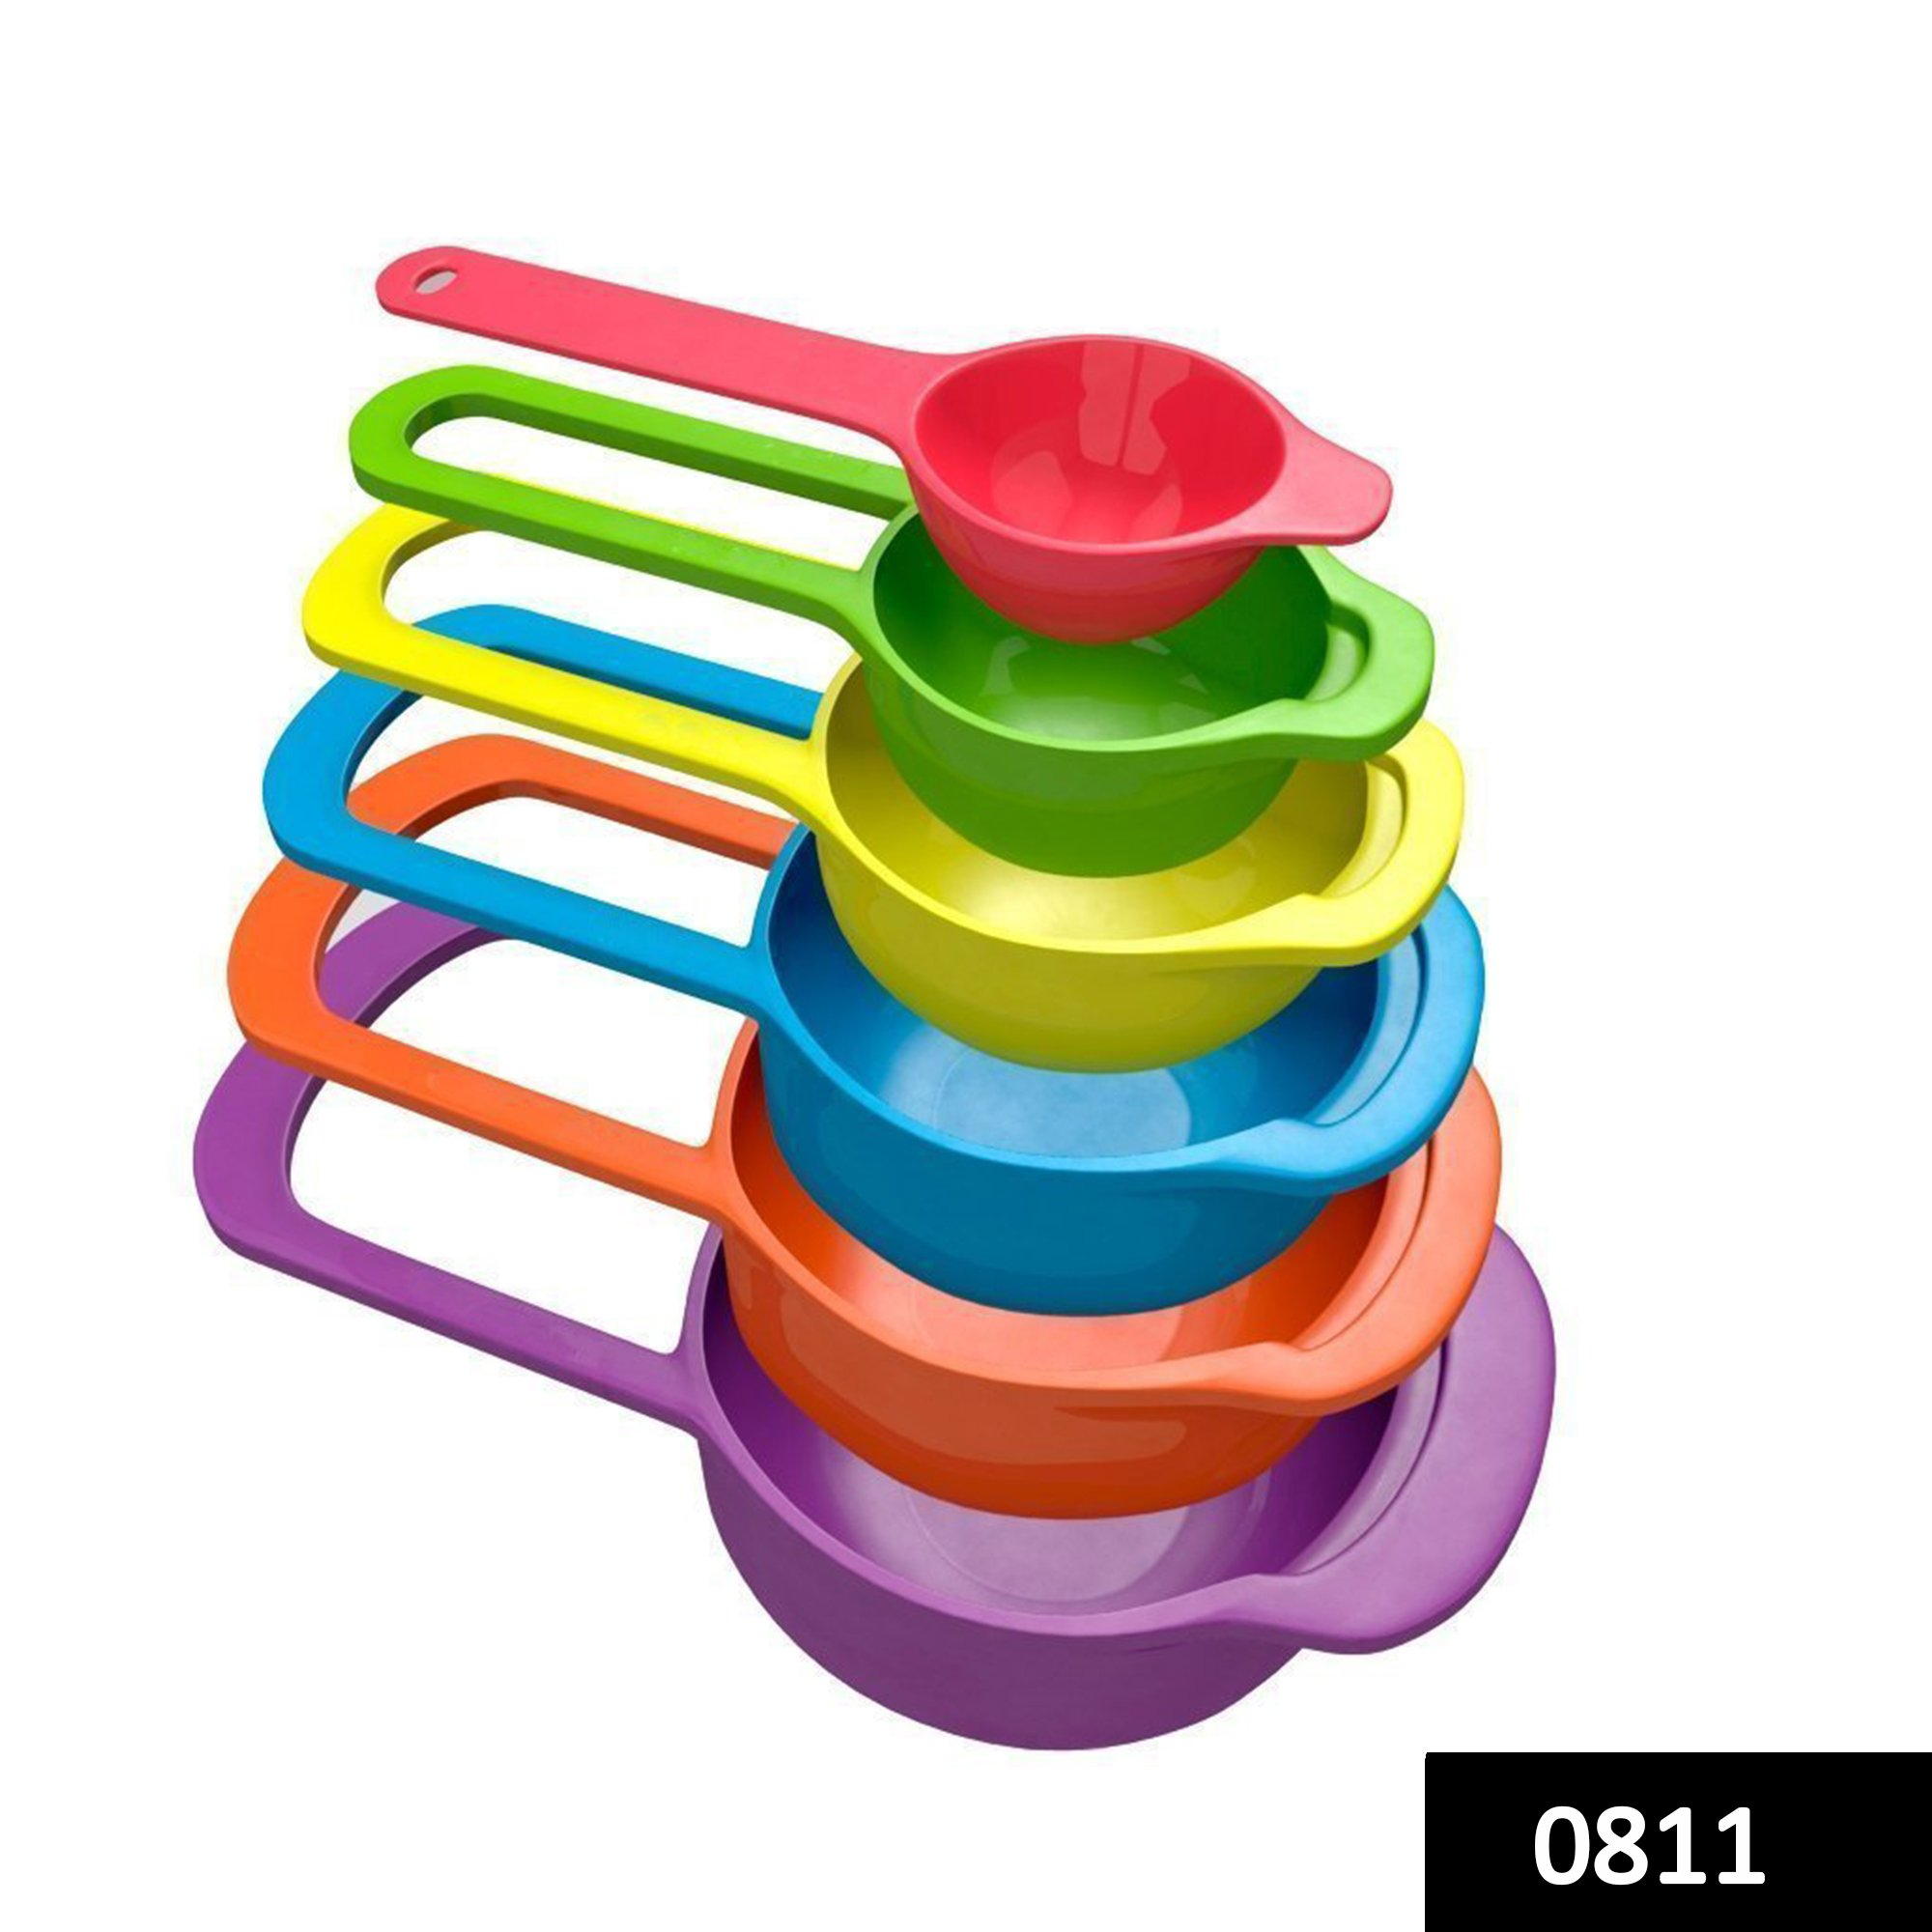 0811 Plastic Measuring Spoons for Kitchen (6 pack) -